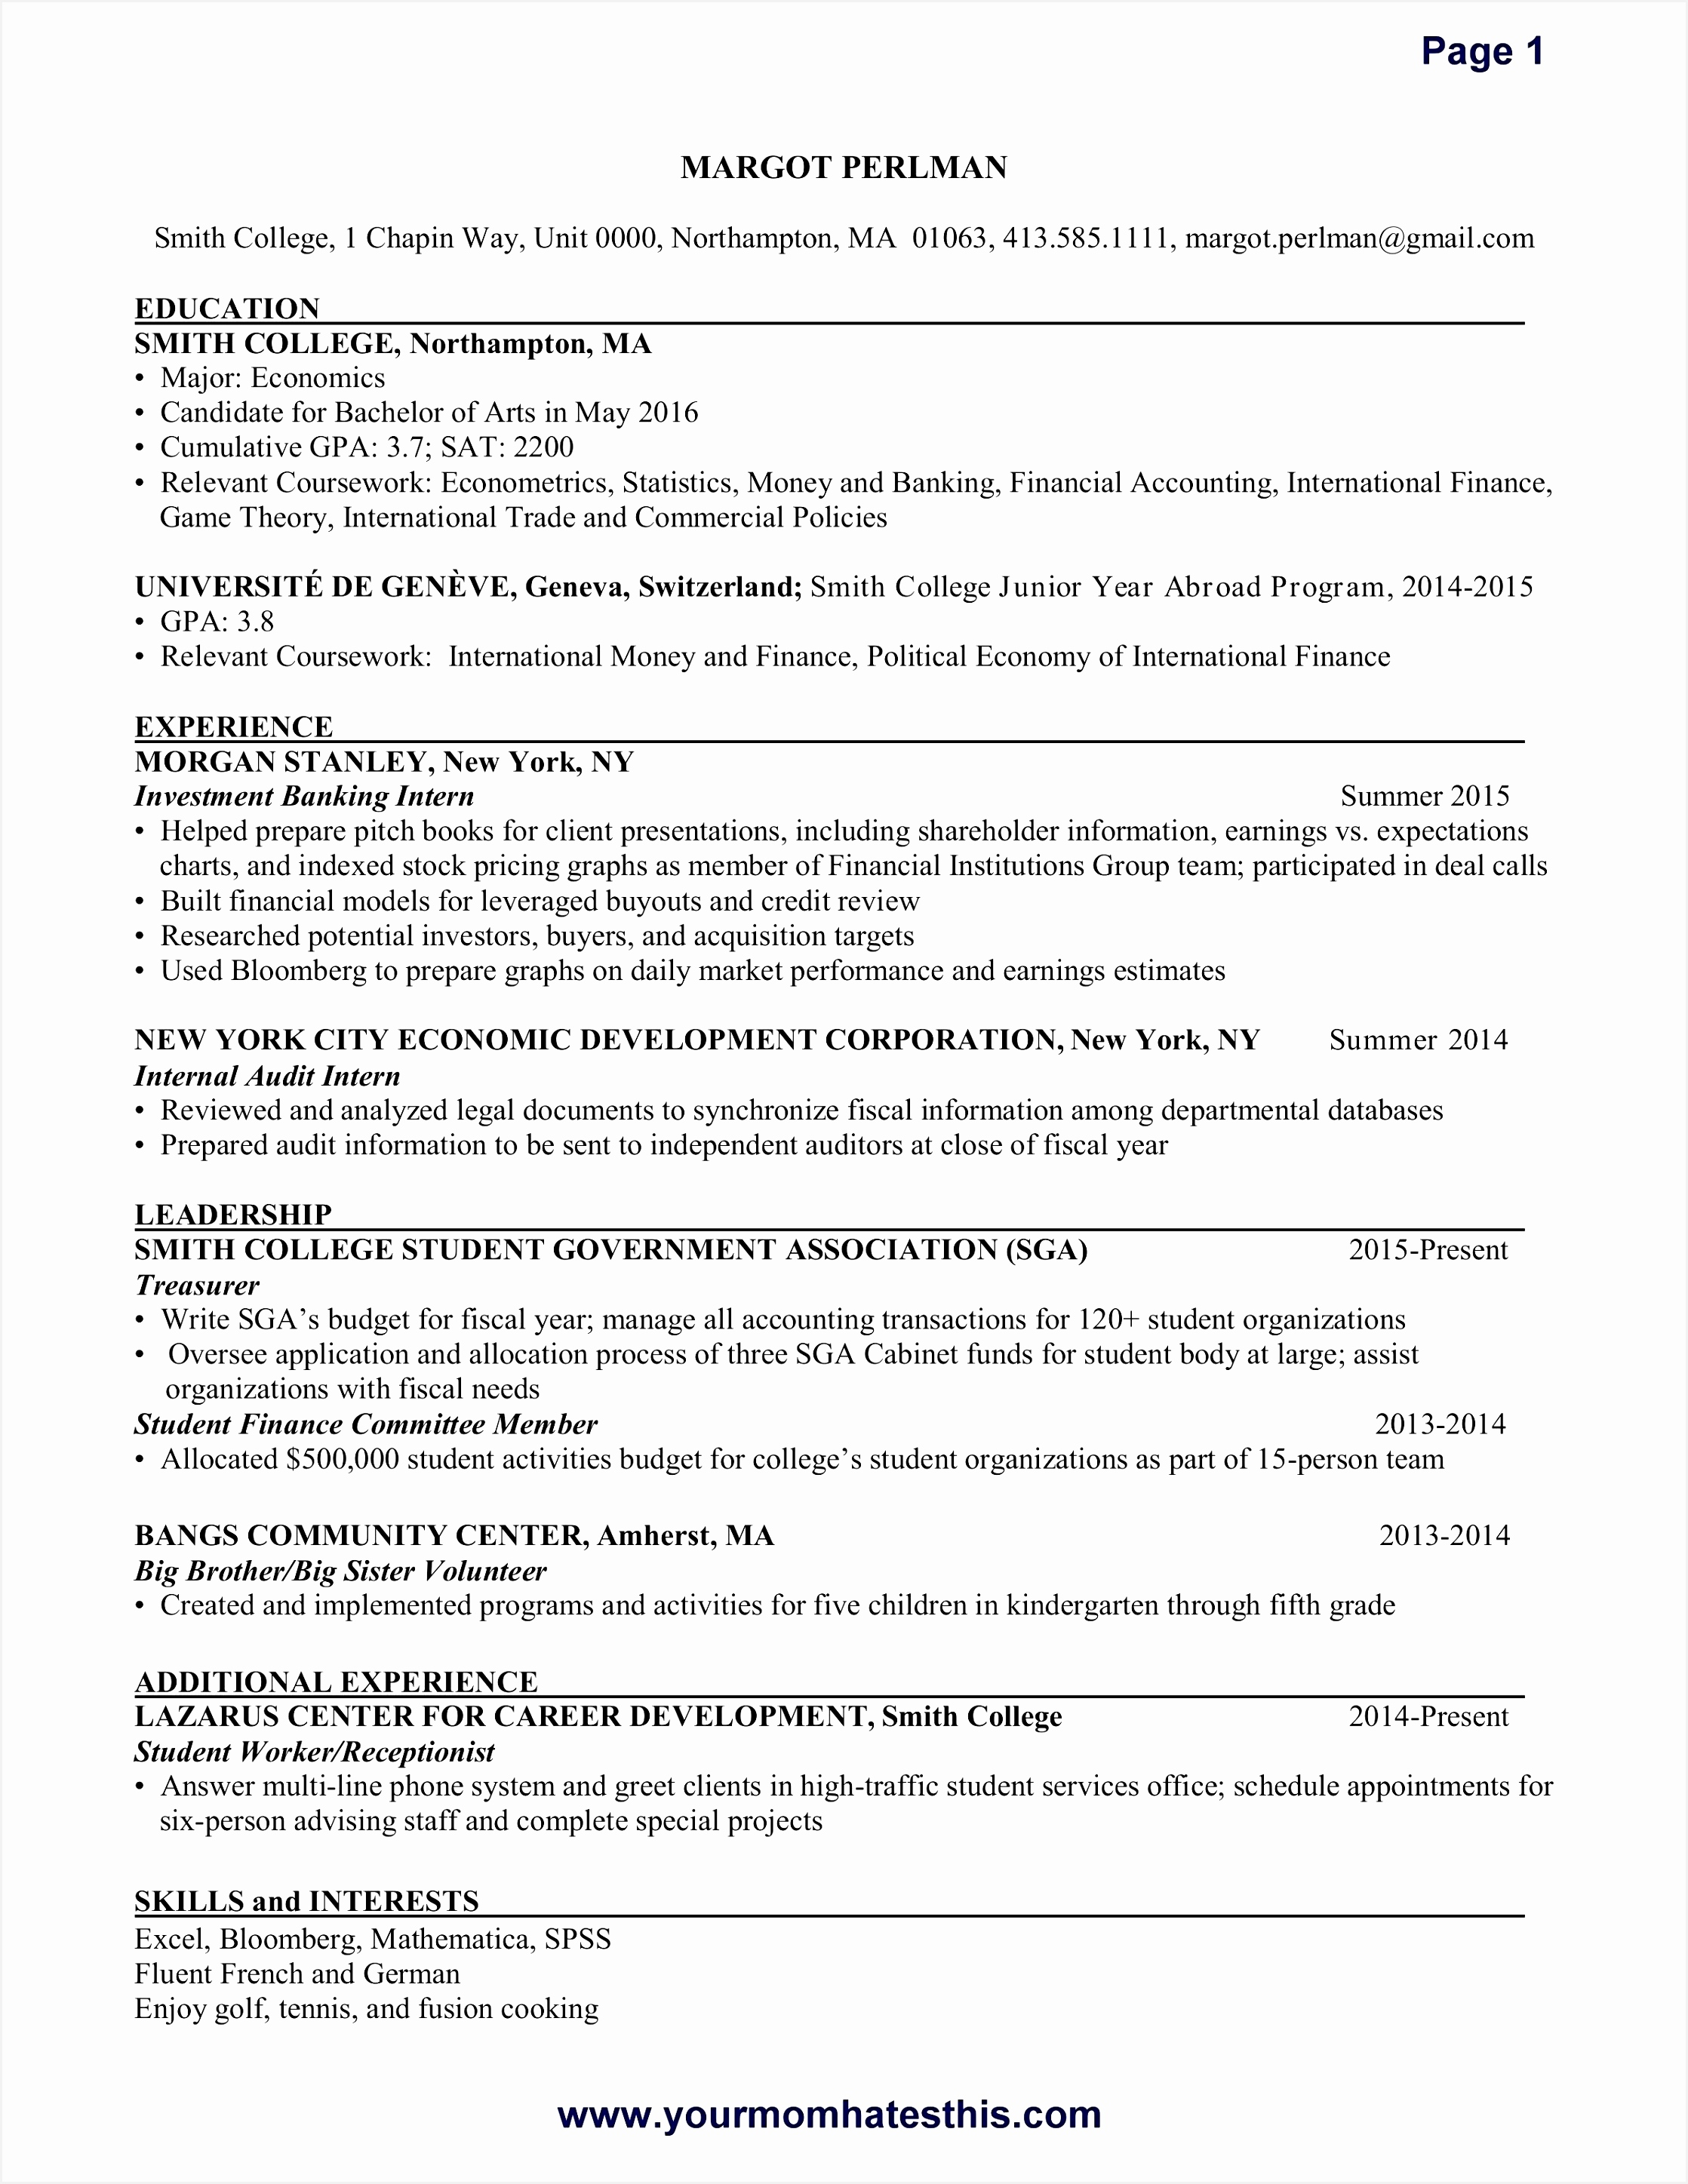 Child Protection Worker Sample Resume Nbfvw Fresh Sample Resume for Business Managers New Resume Examples Property28952237